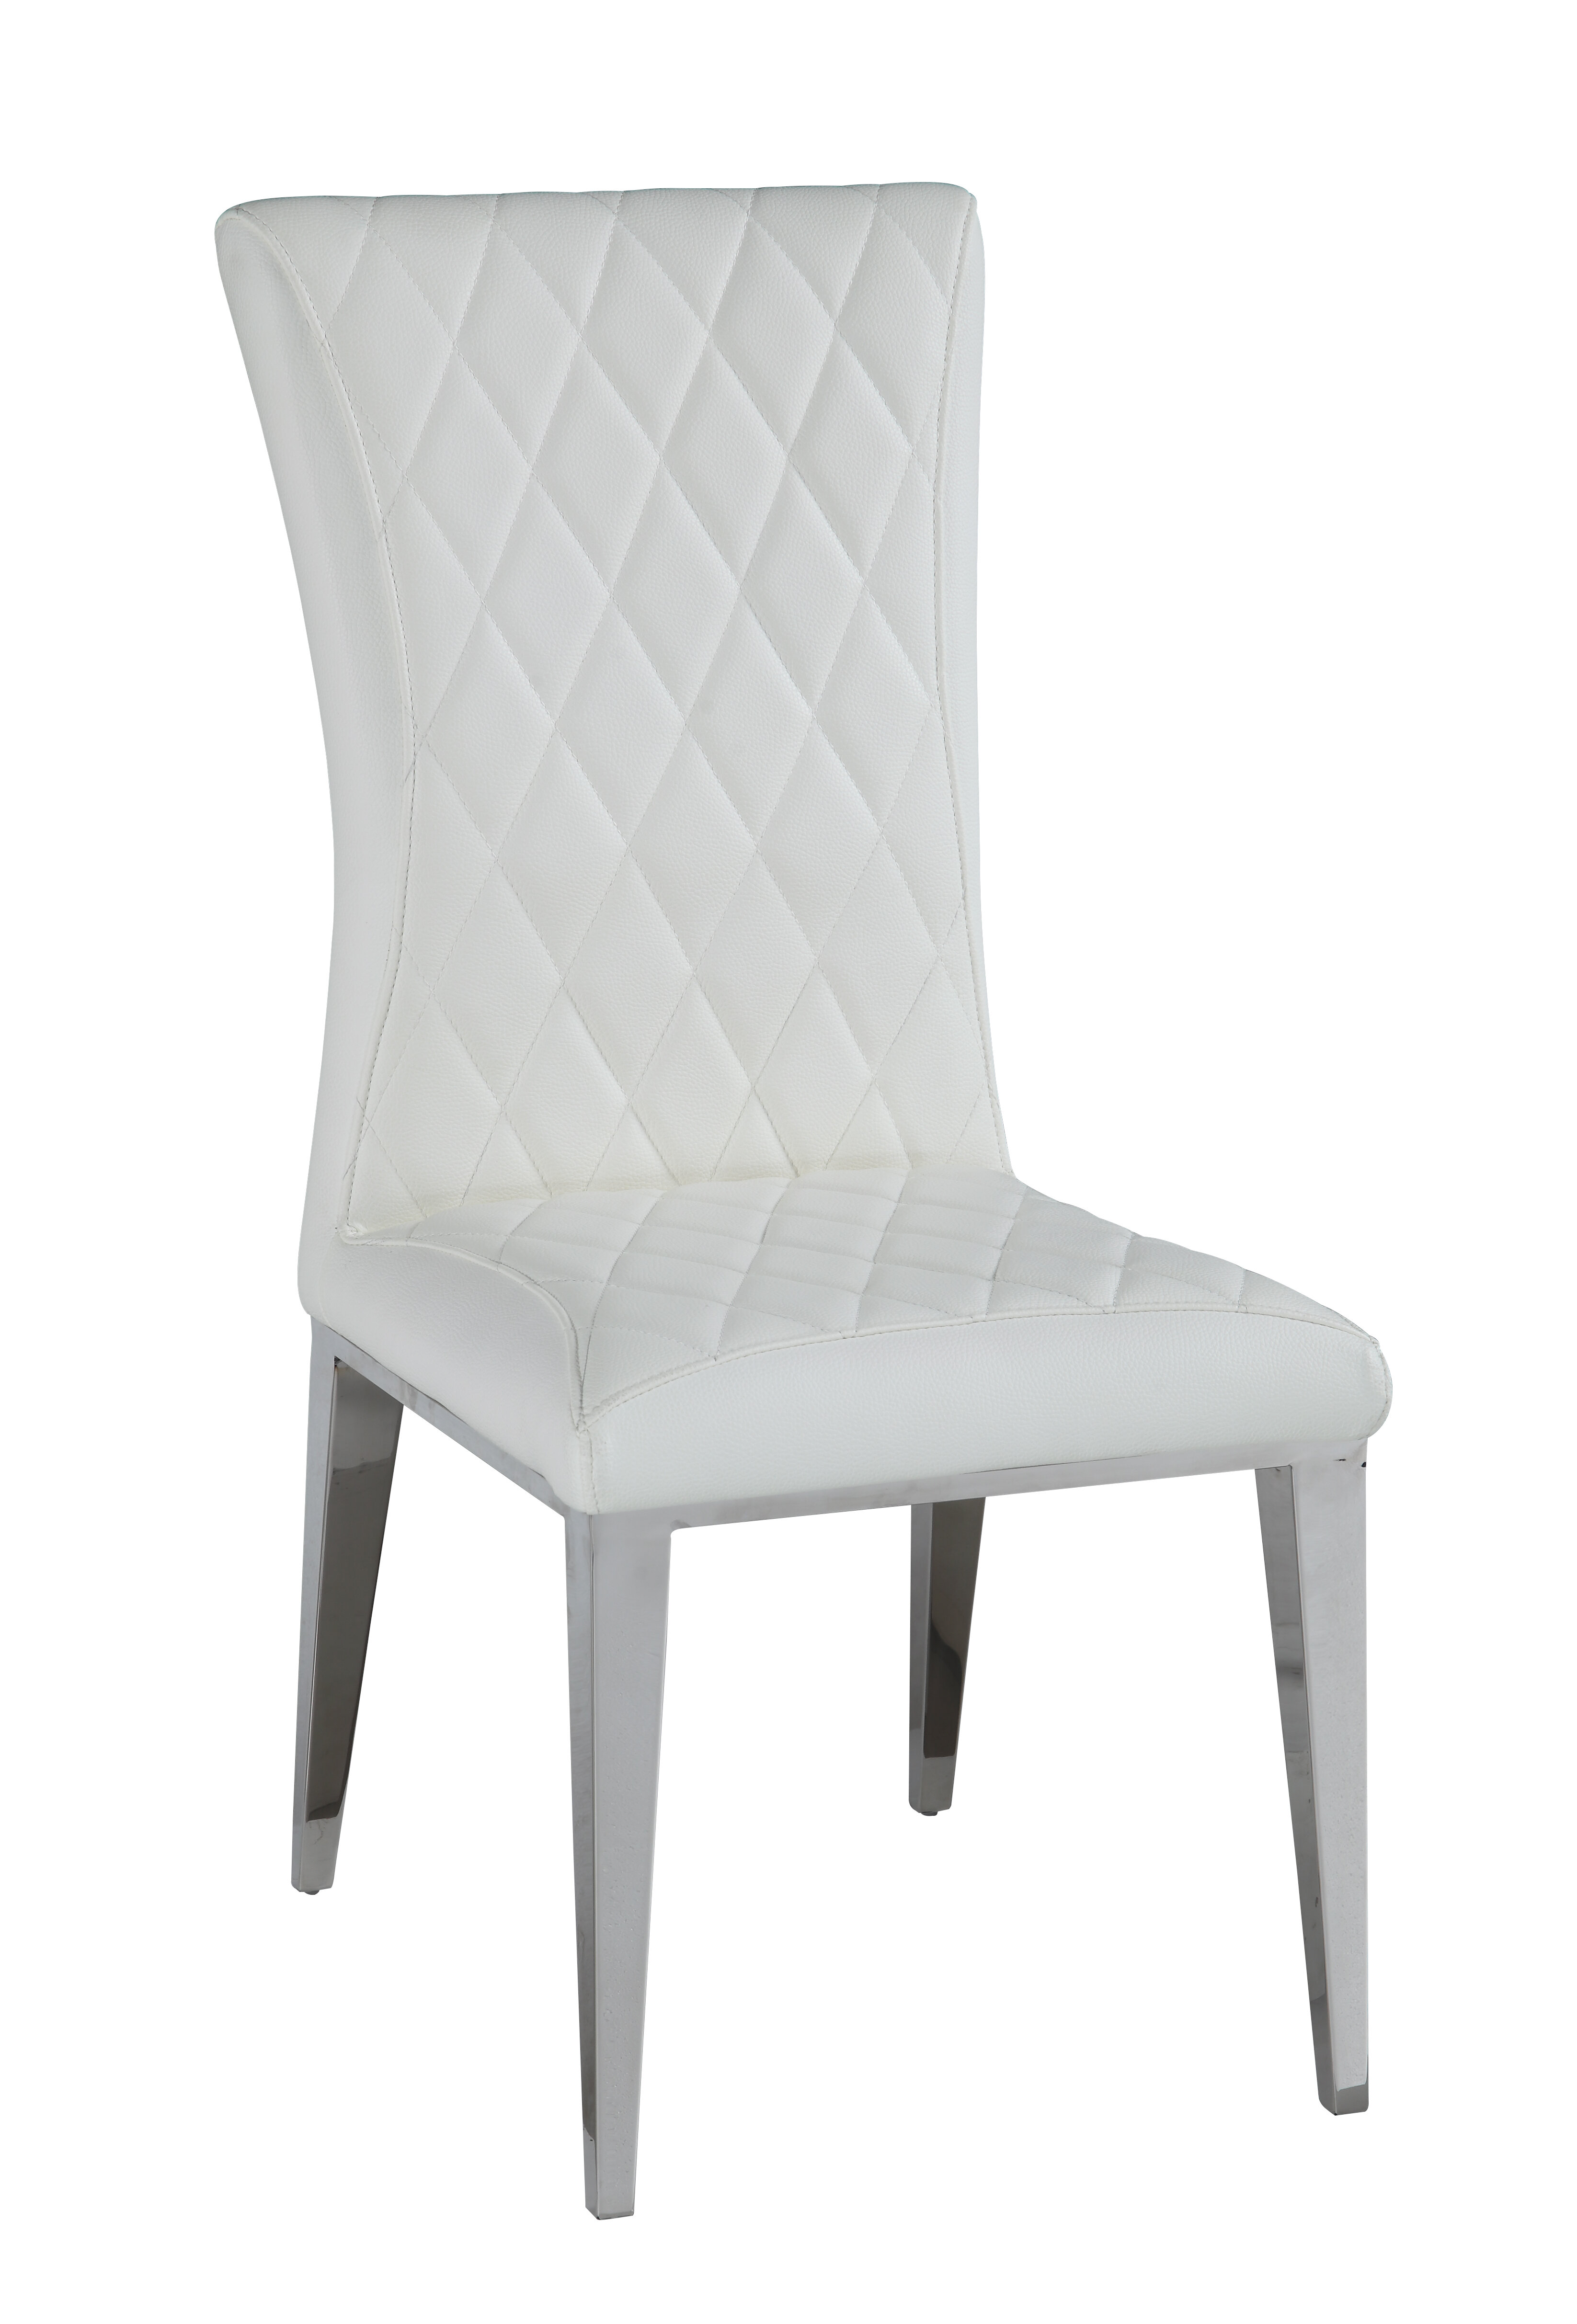 Orren Ellis Berlin Upholstered Dining Chair Wayfair